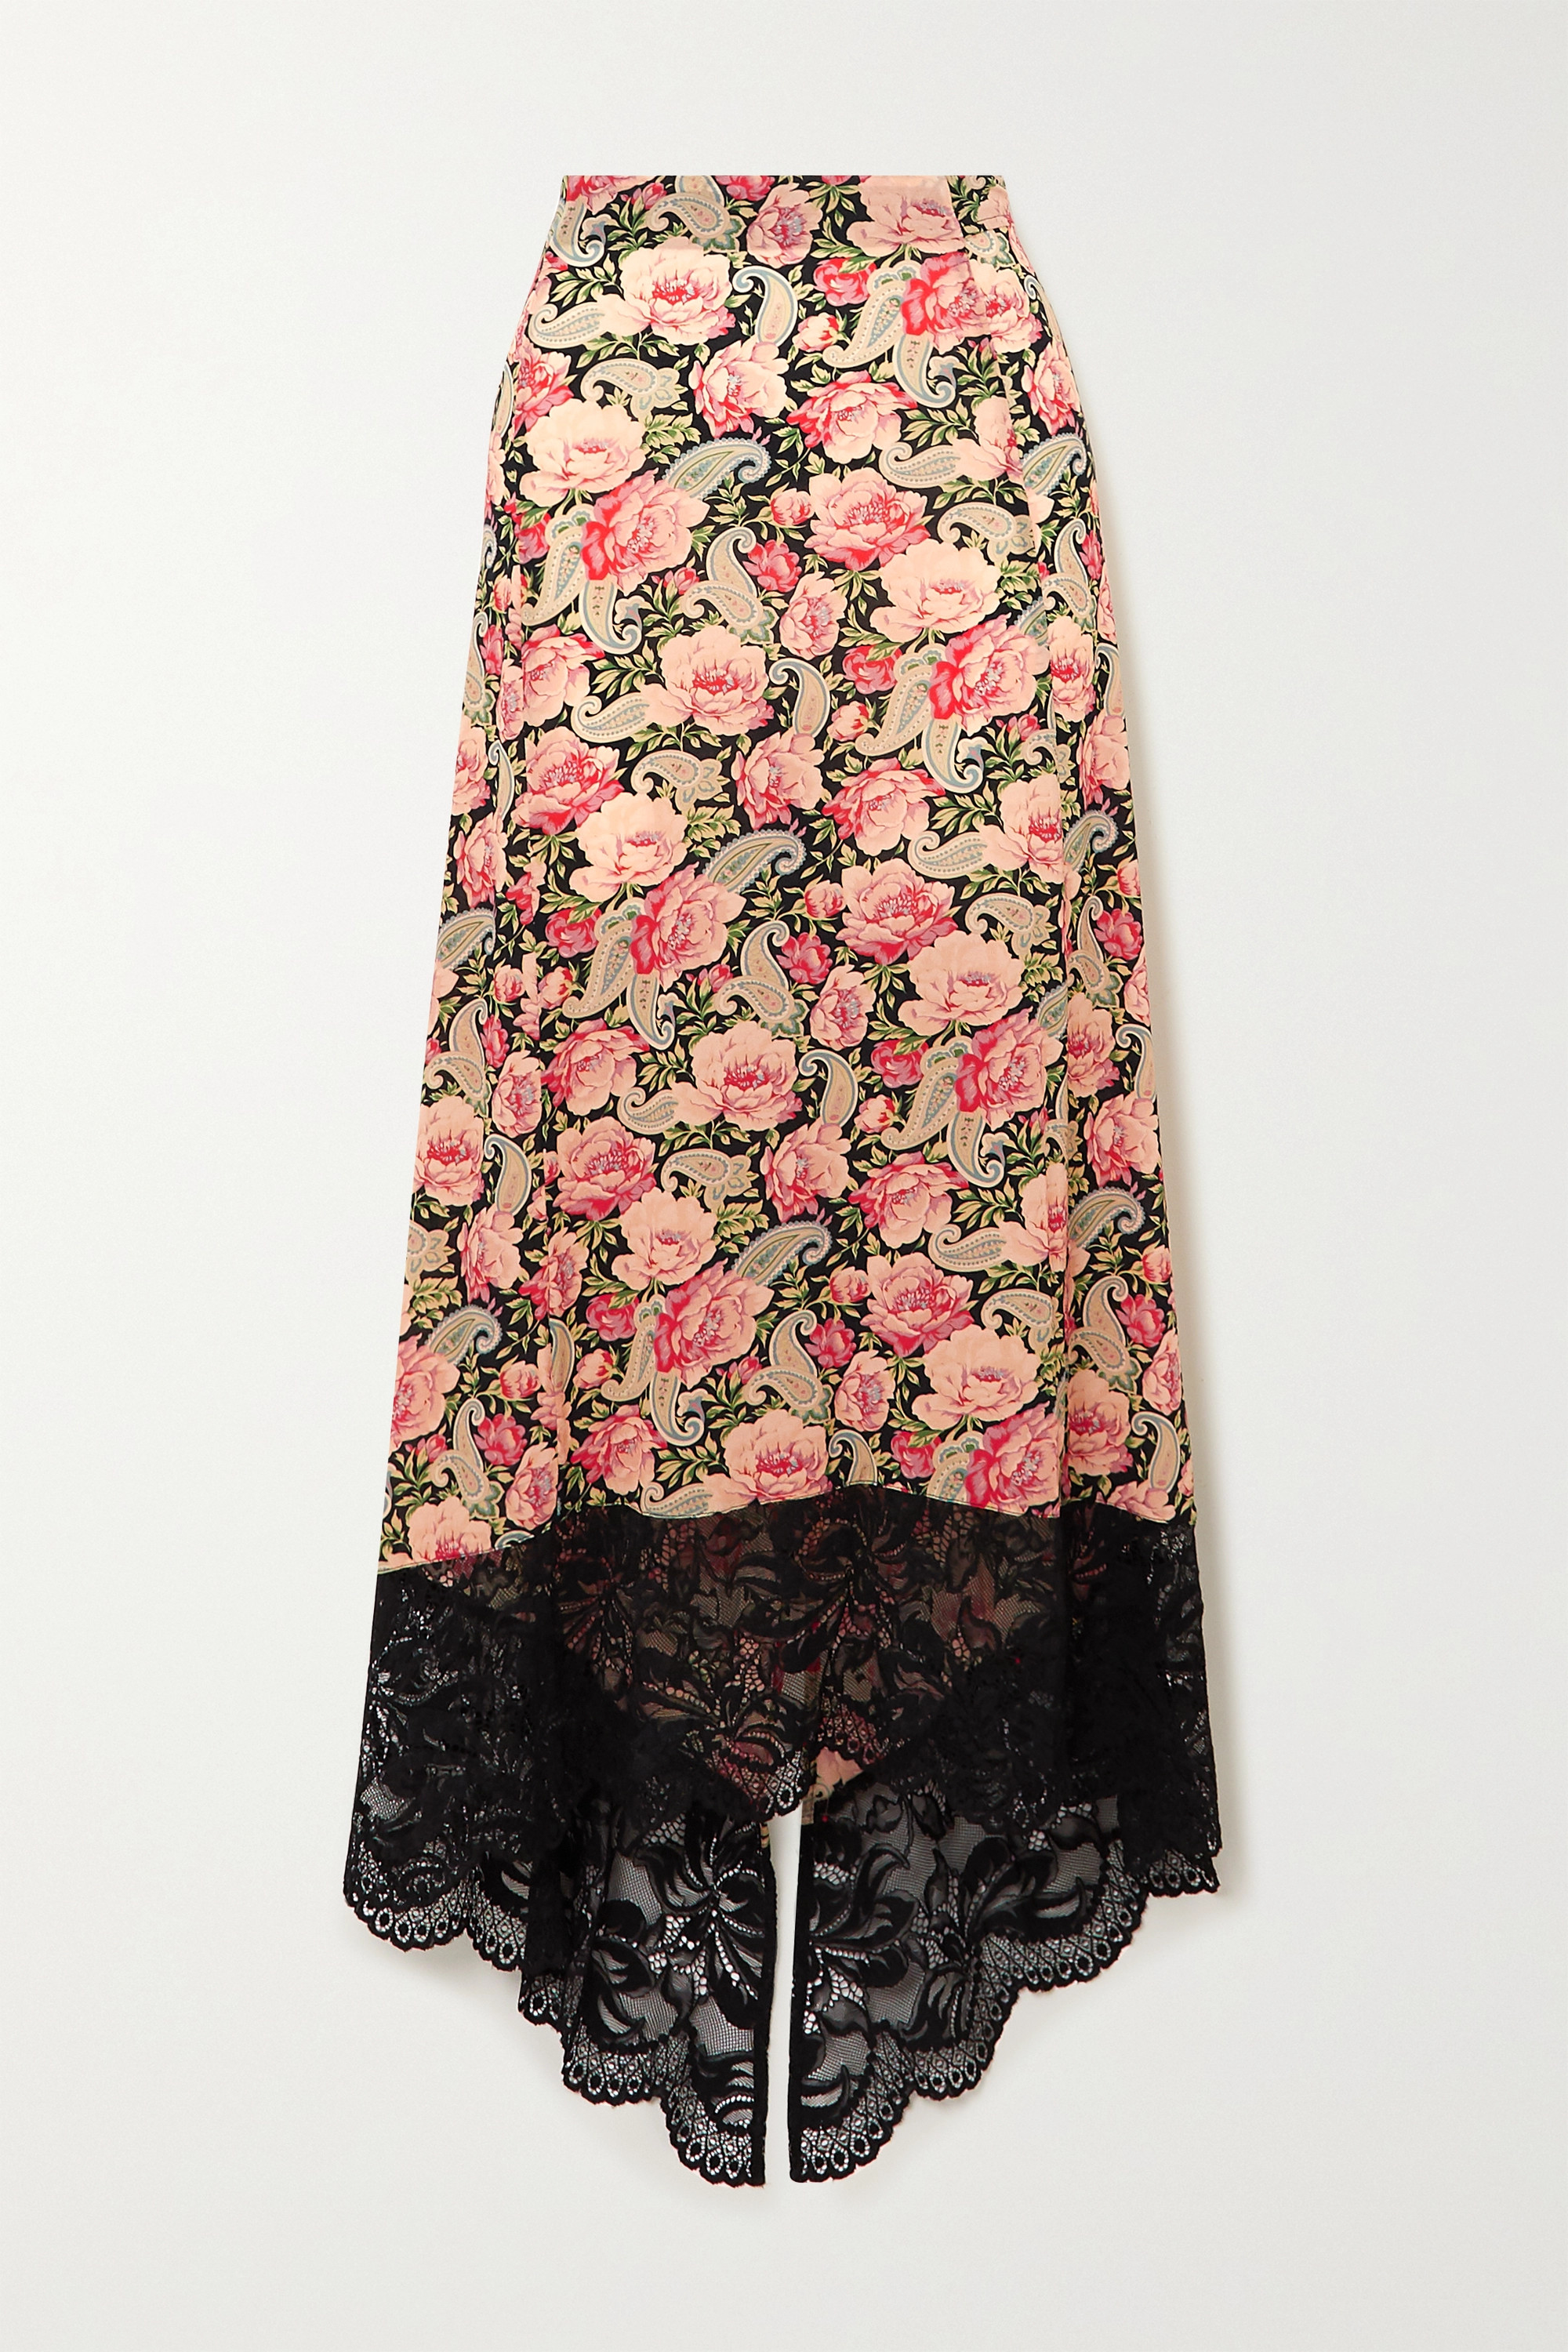 Paco Rabanne Asymmetric lace-trimmed floral-print stretch-jersey skirt